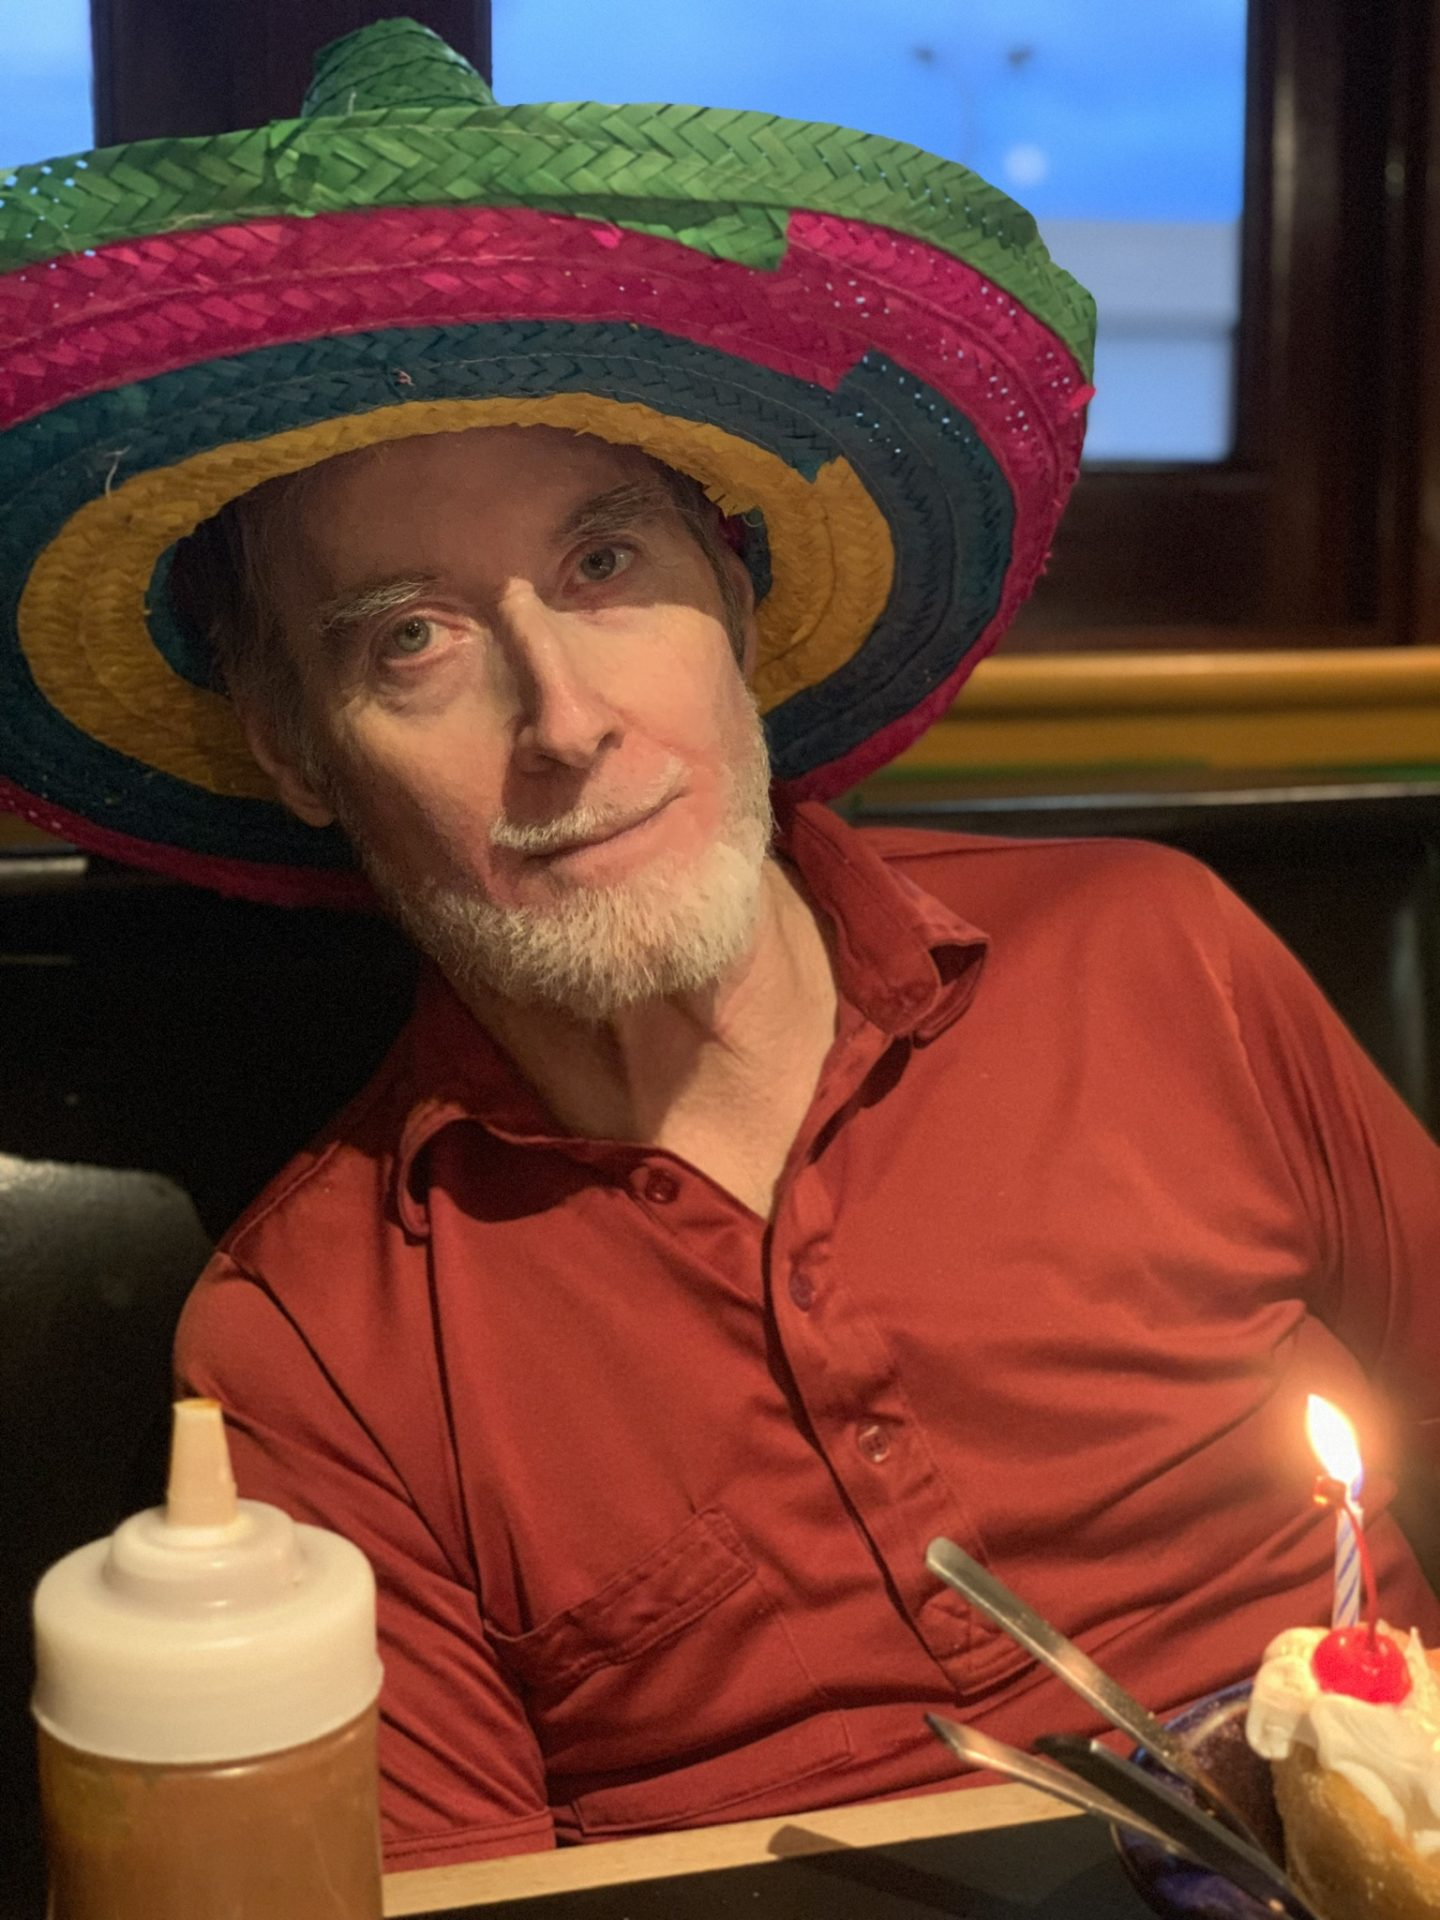 Ed's birthday 2018 ...at what restaurant? Bet you can guess! Good Mexican food & a good time with family.